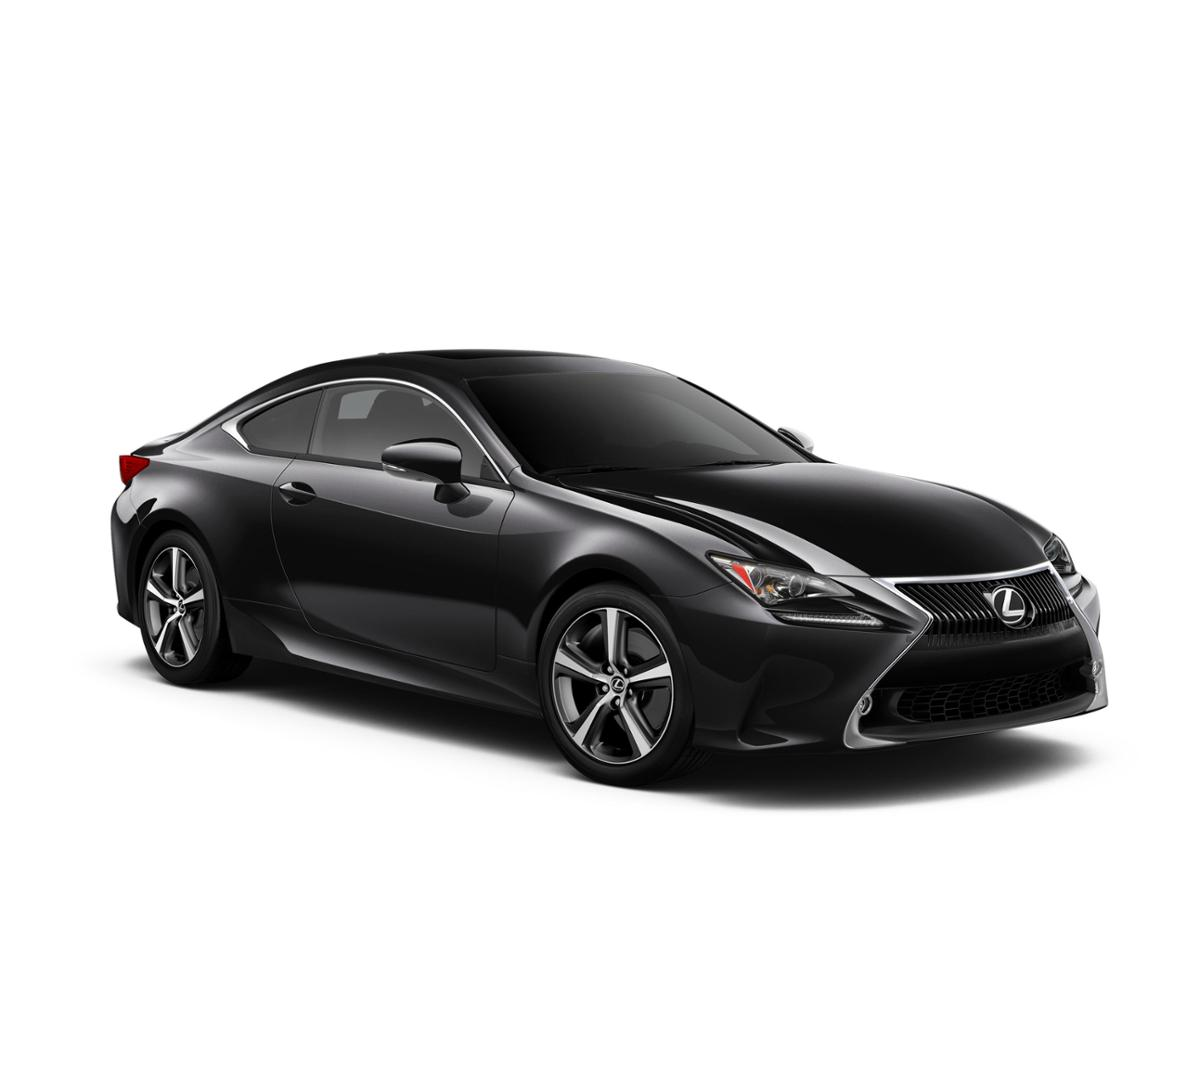 Lexus Dealership In Va: 2018 Lexus RC 300 For Sale In Virginia Beach